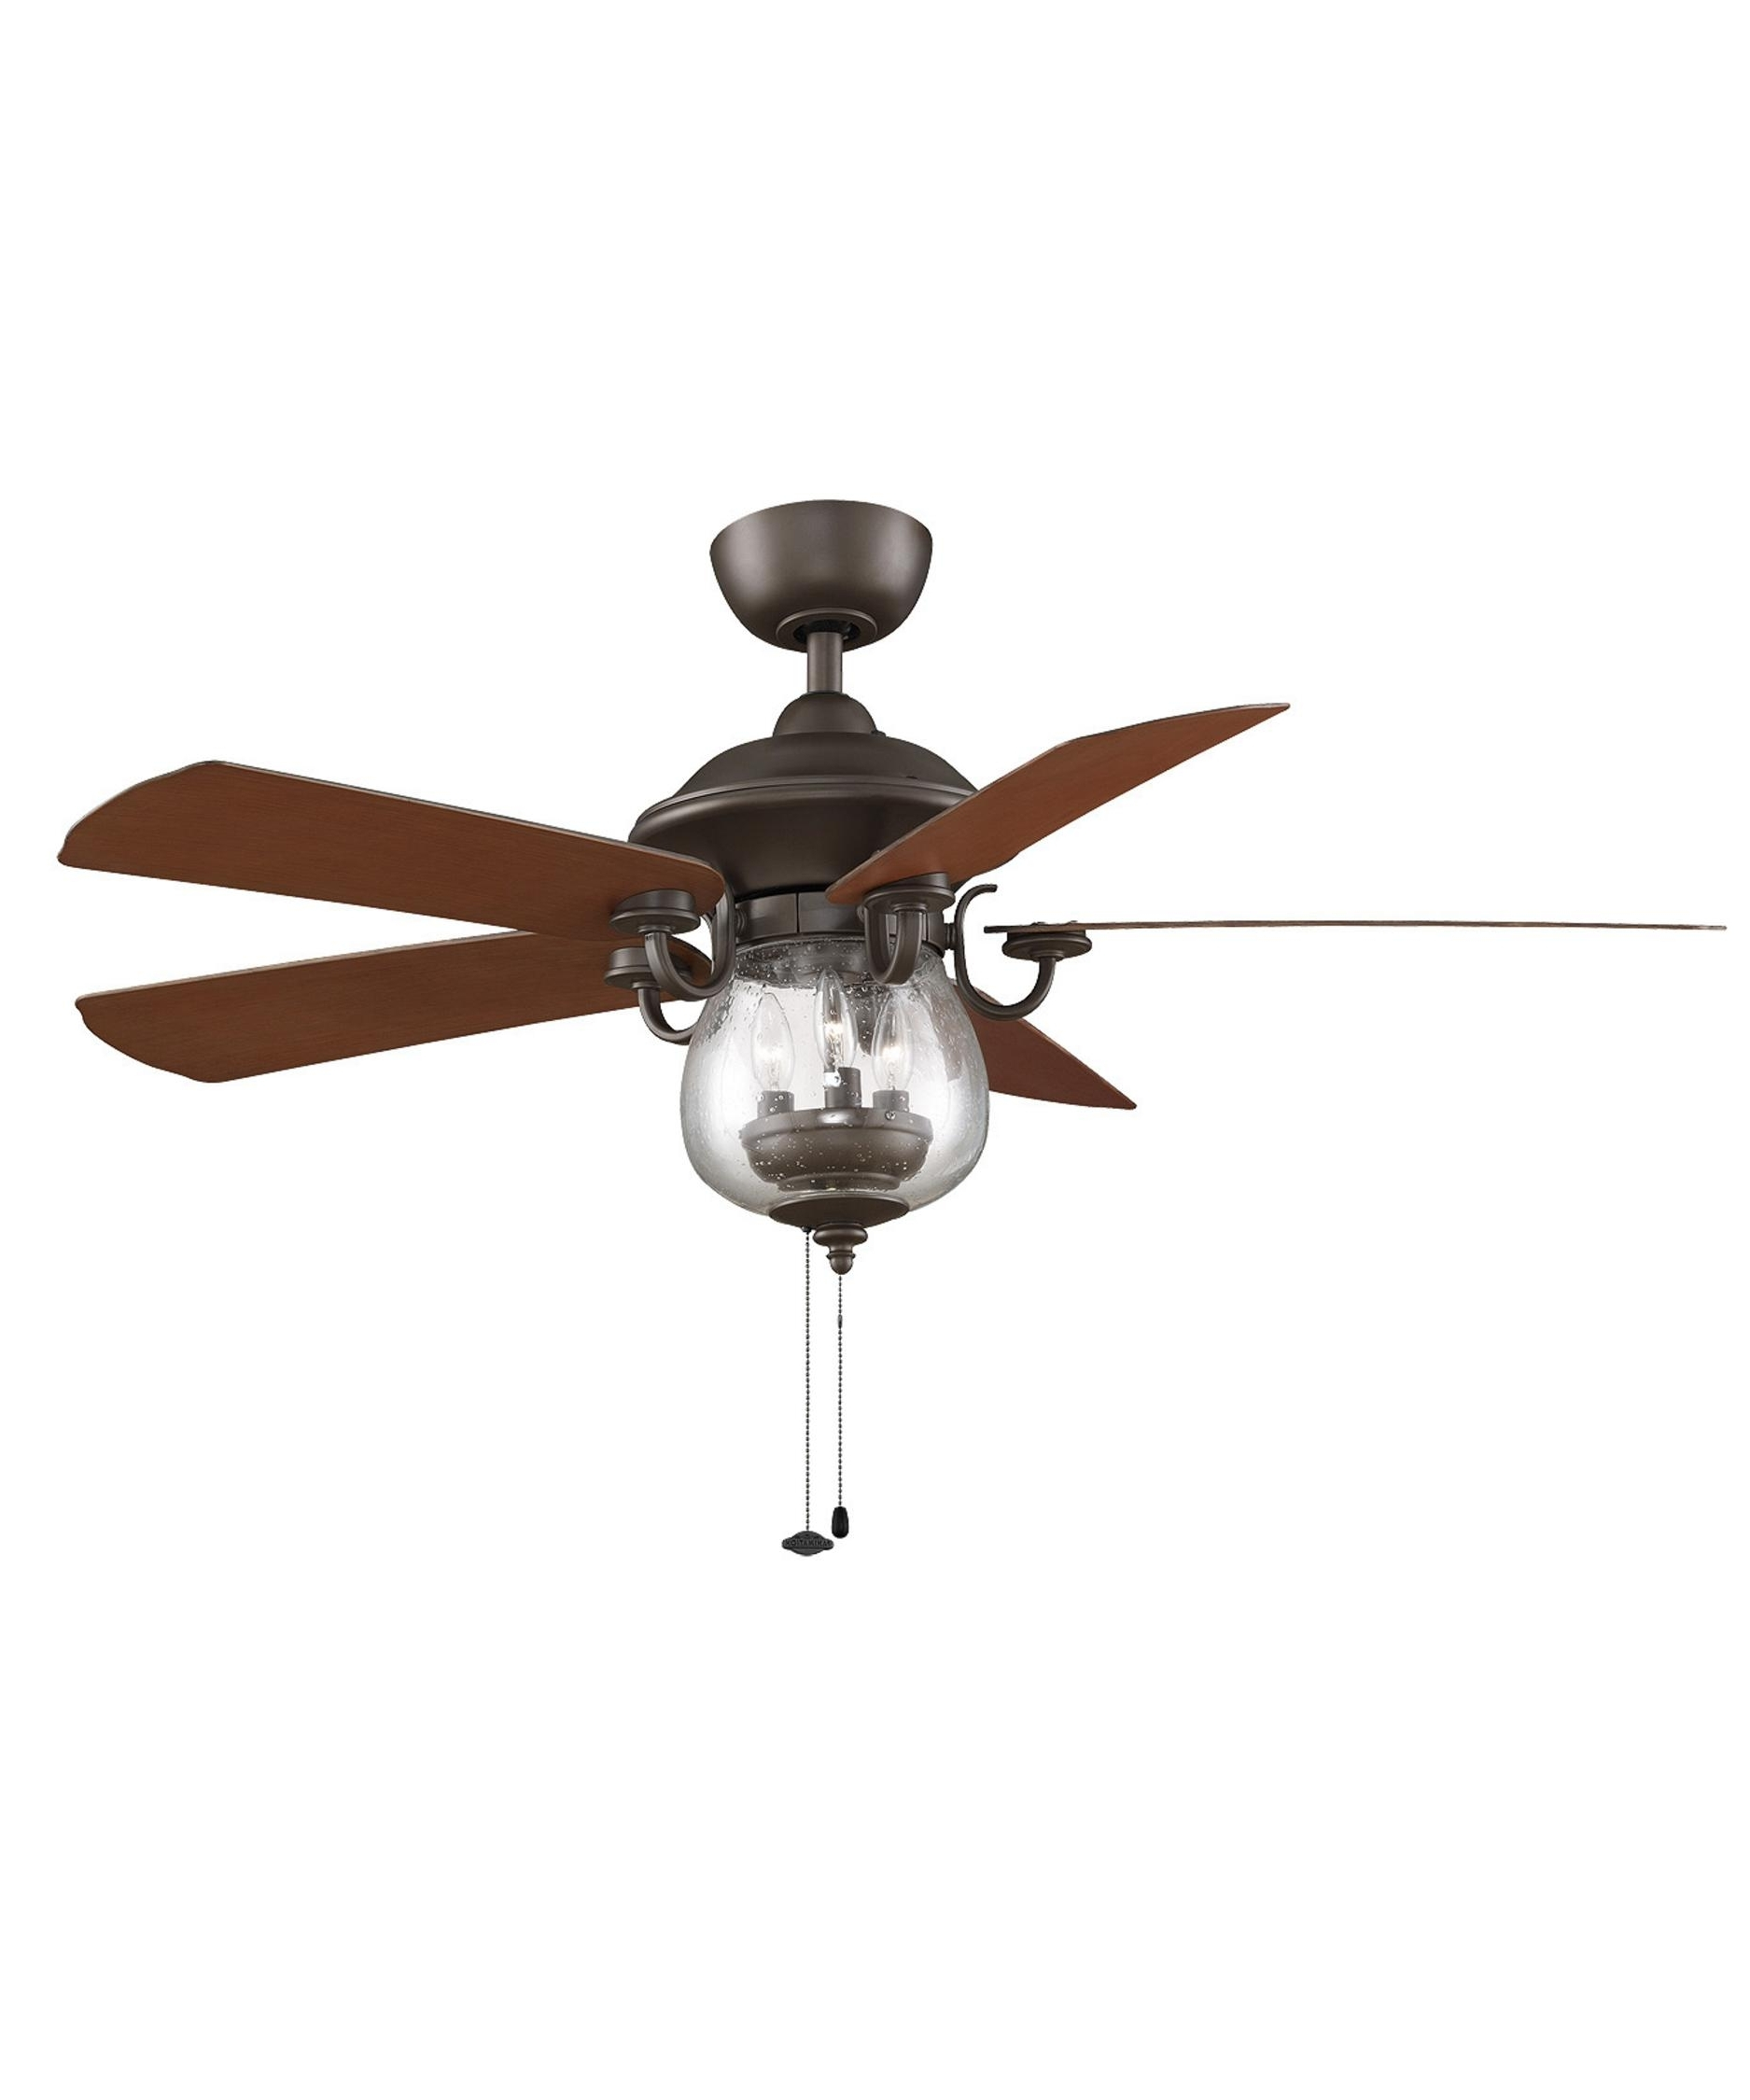 Hunter Outdoor Ceiling Fans With Lights Regarding Widely Used 52 Inch Outdoor Ceiling Fans With Lights (View 14 of 20)